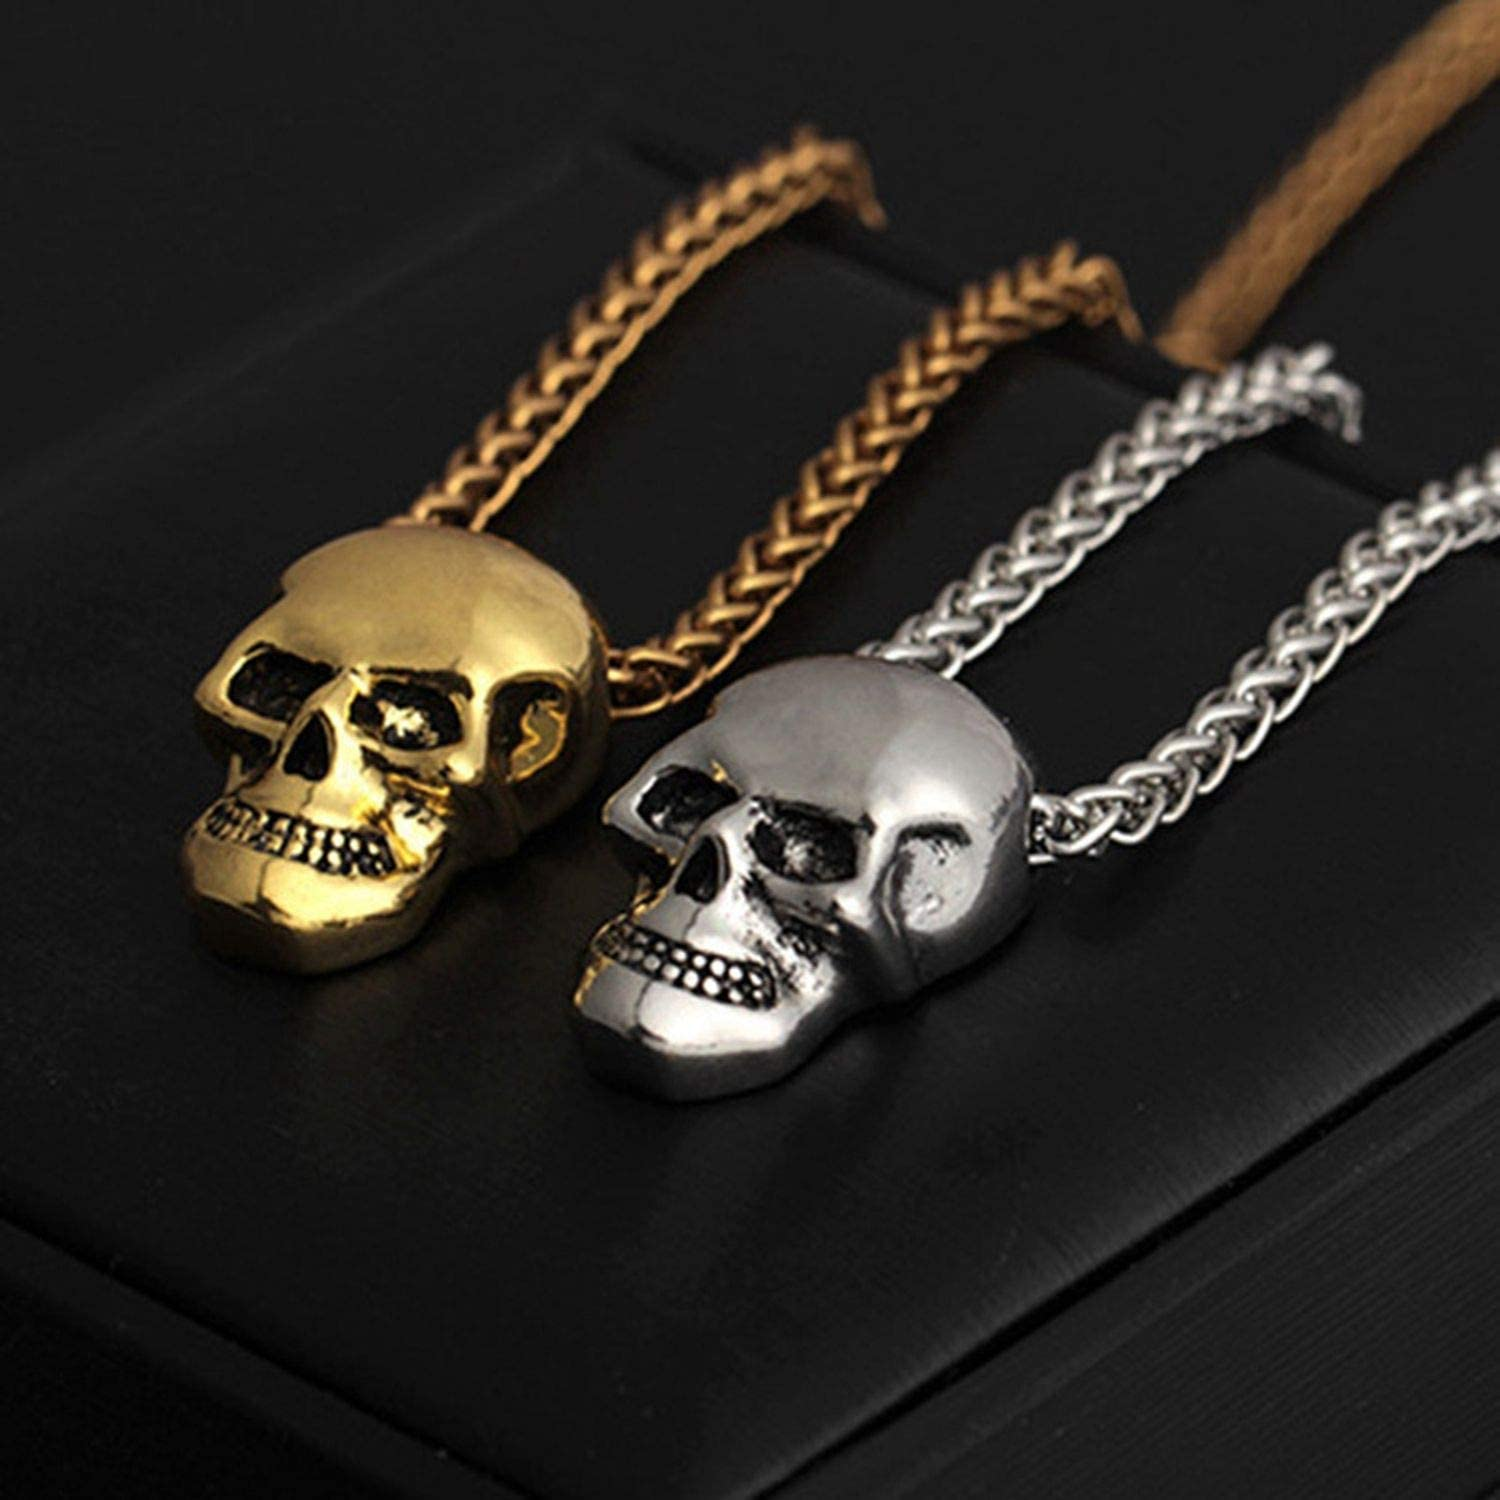 Halloween Jewelry Skull Necklace Stainless Steel Gothic Biker Pendant /& Chain For Men//Women